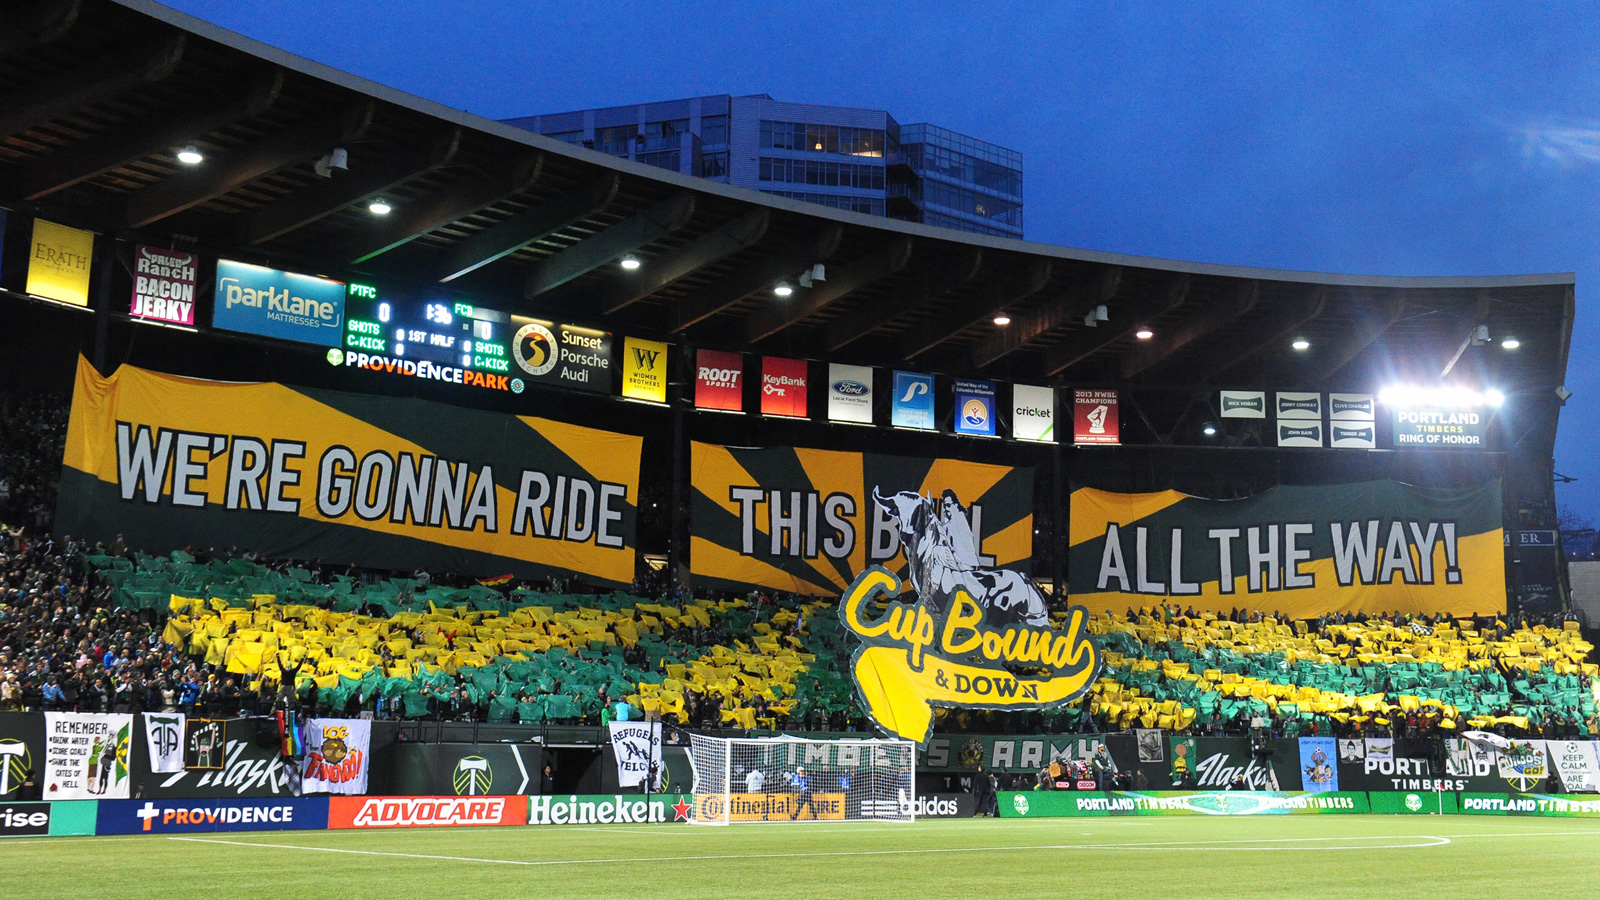 The Timbers Army doubles down on their Eastbound and Down theme, adding another wrinkle during the club's MLS Western Conference final first leg vs. FC Dallas on November 22, 2015 at Providence Park.